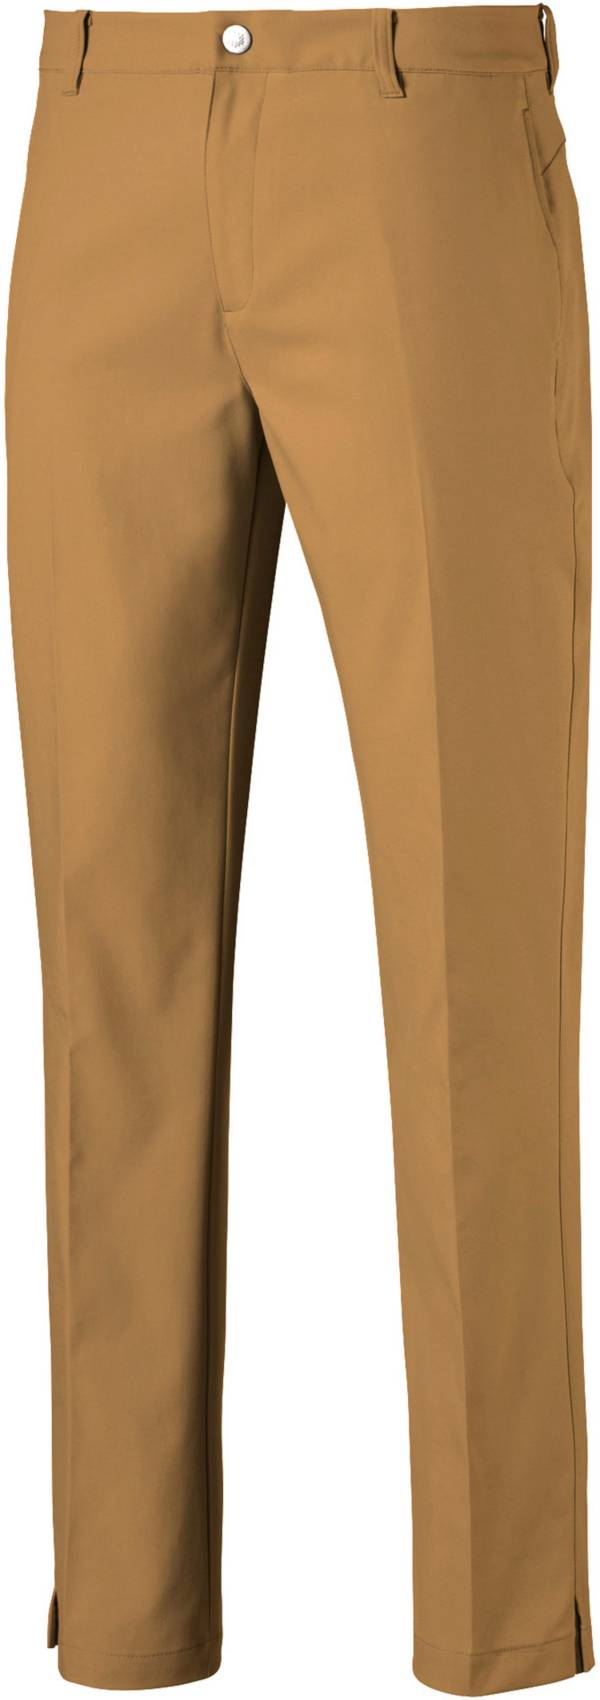 PUMA Men's Jackpot Golf Pants product image